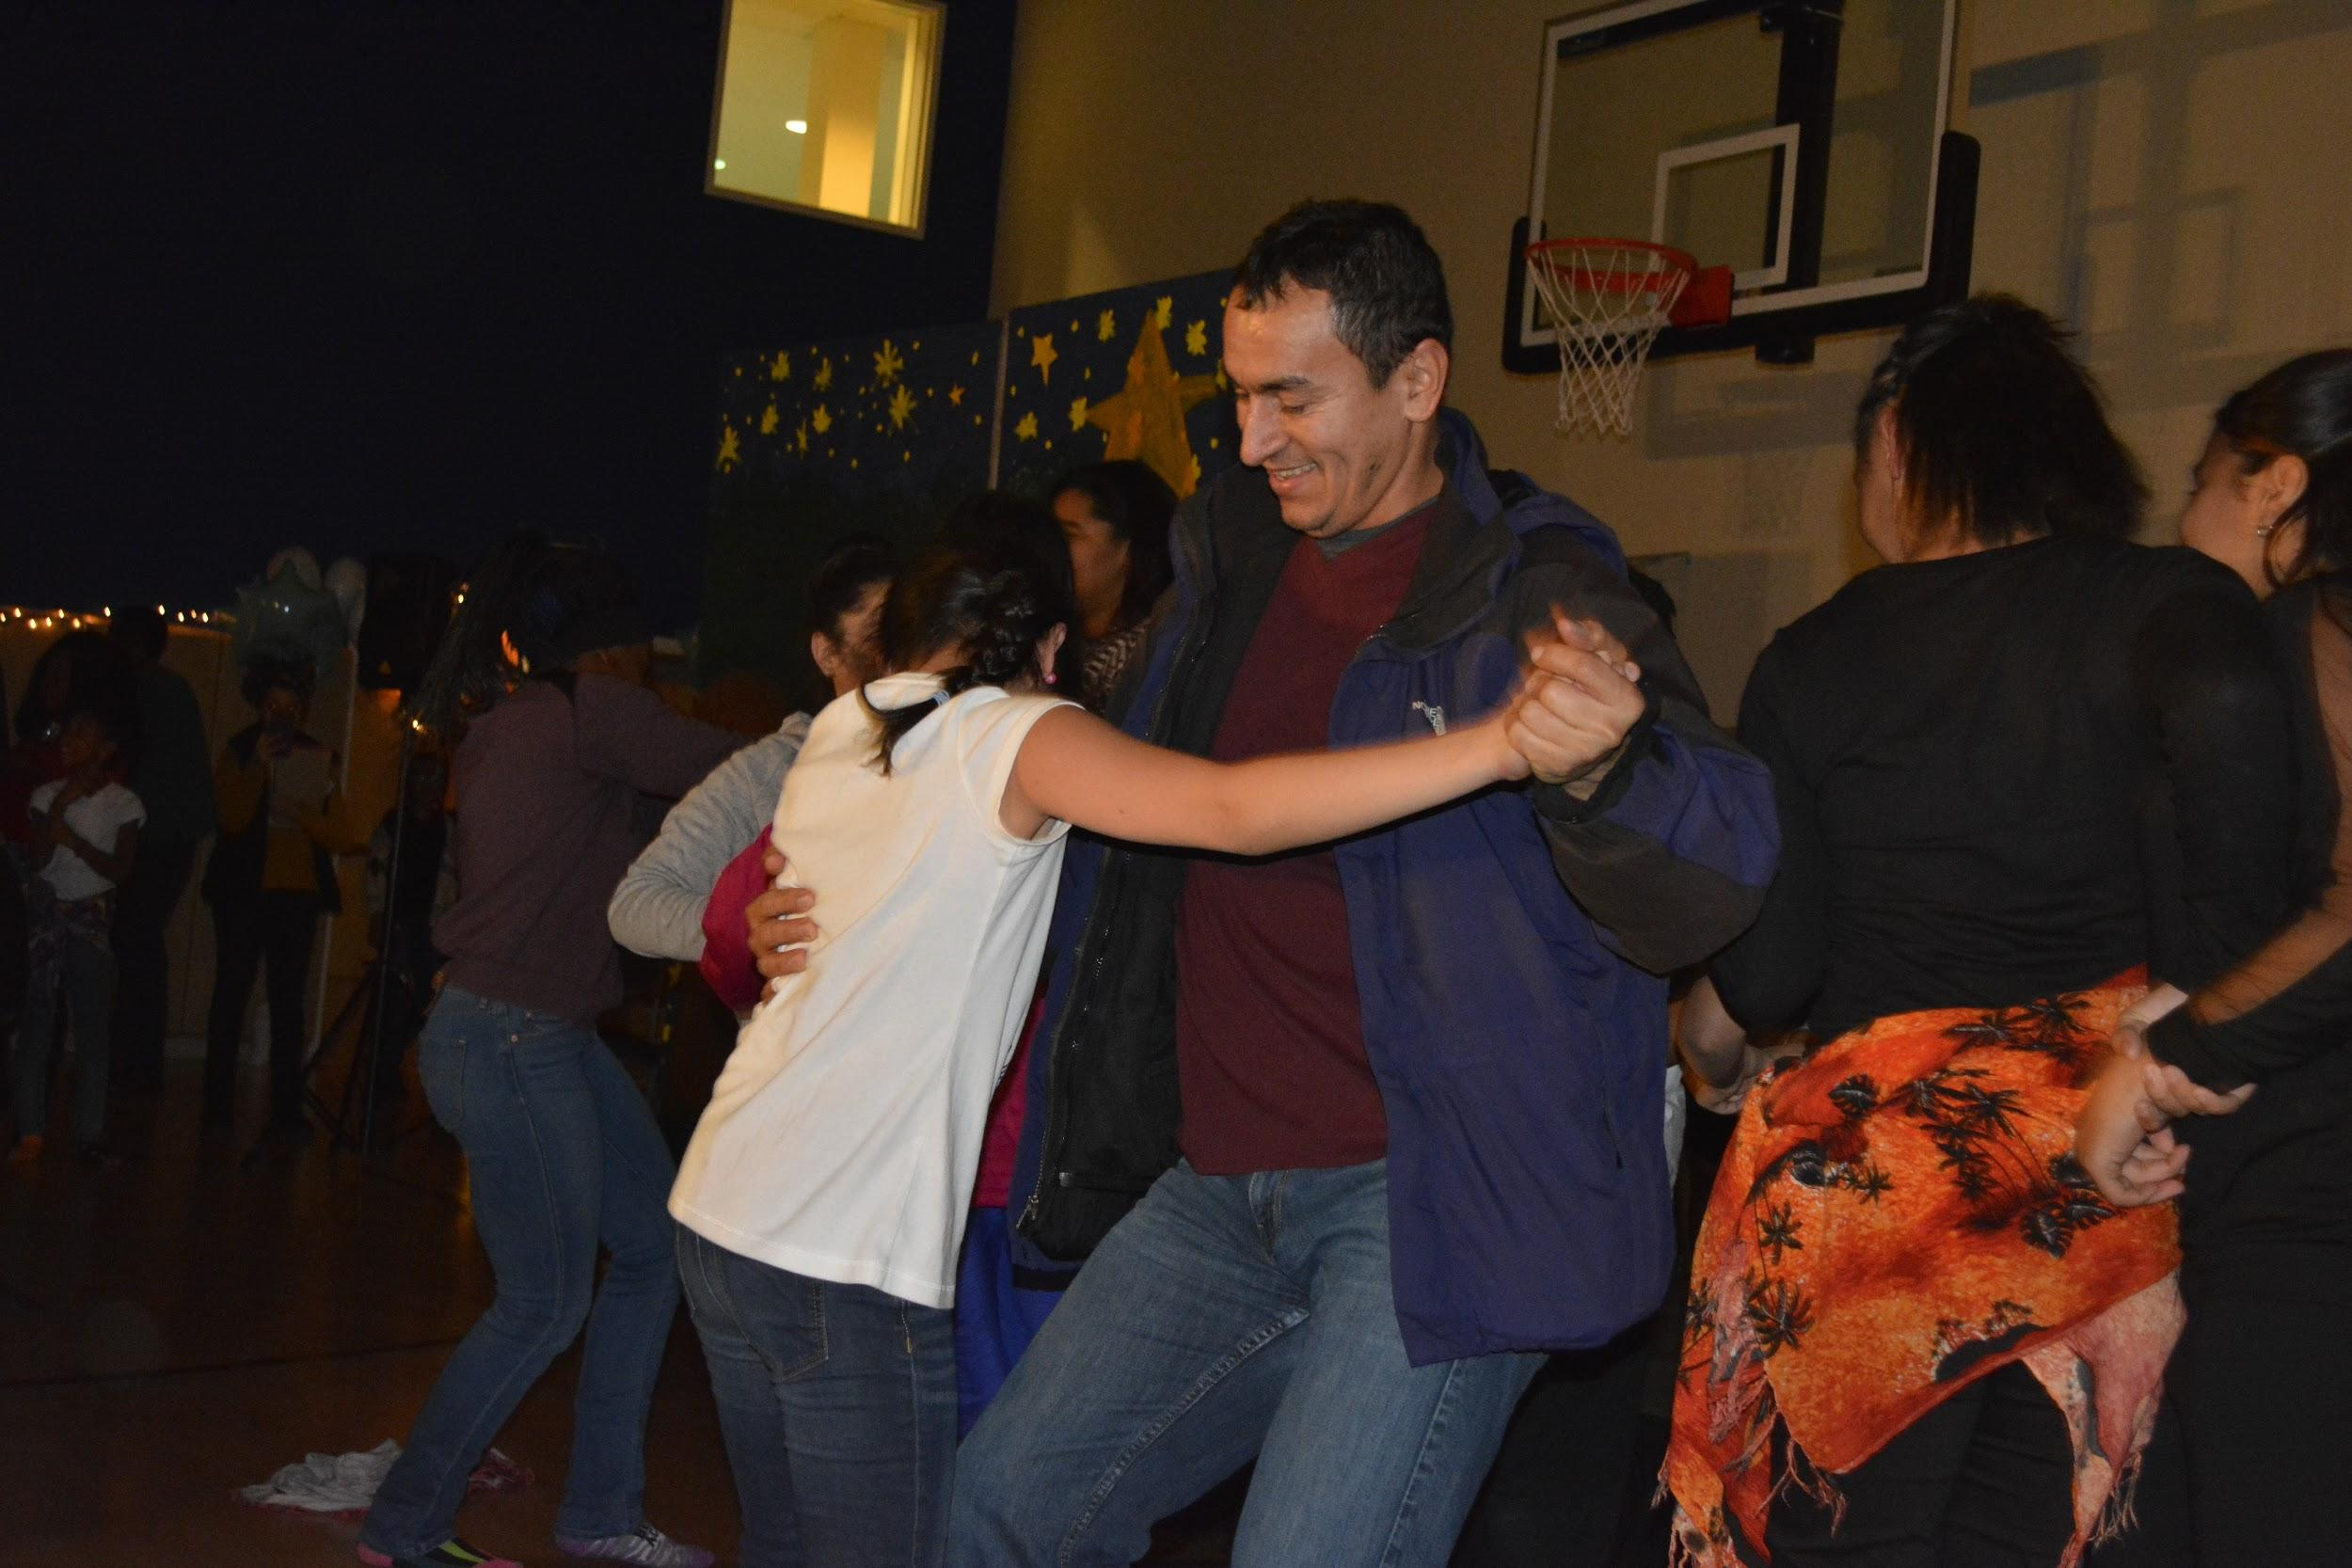 Isabella dancing with her father during the Dance elective